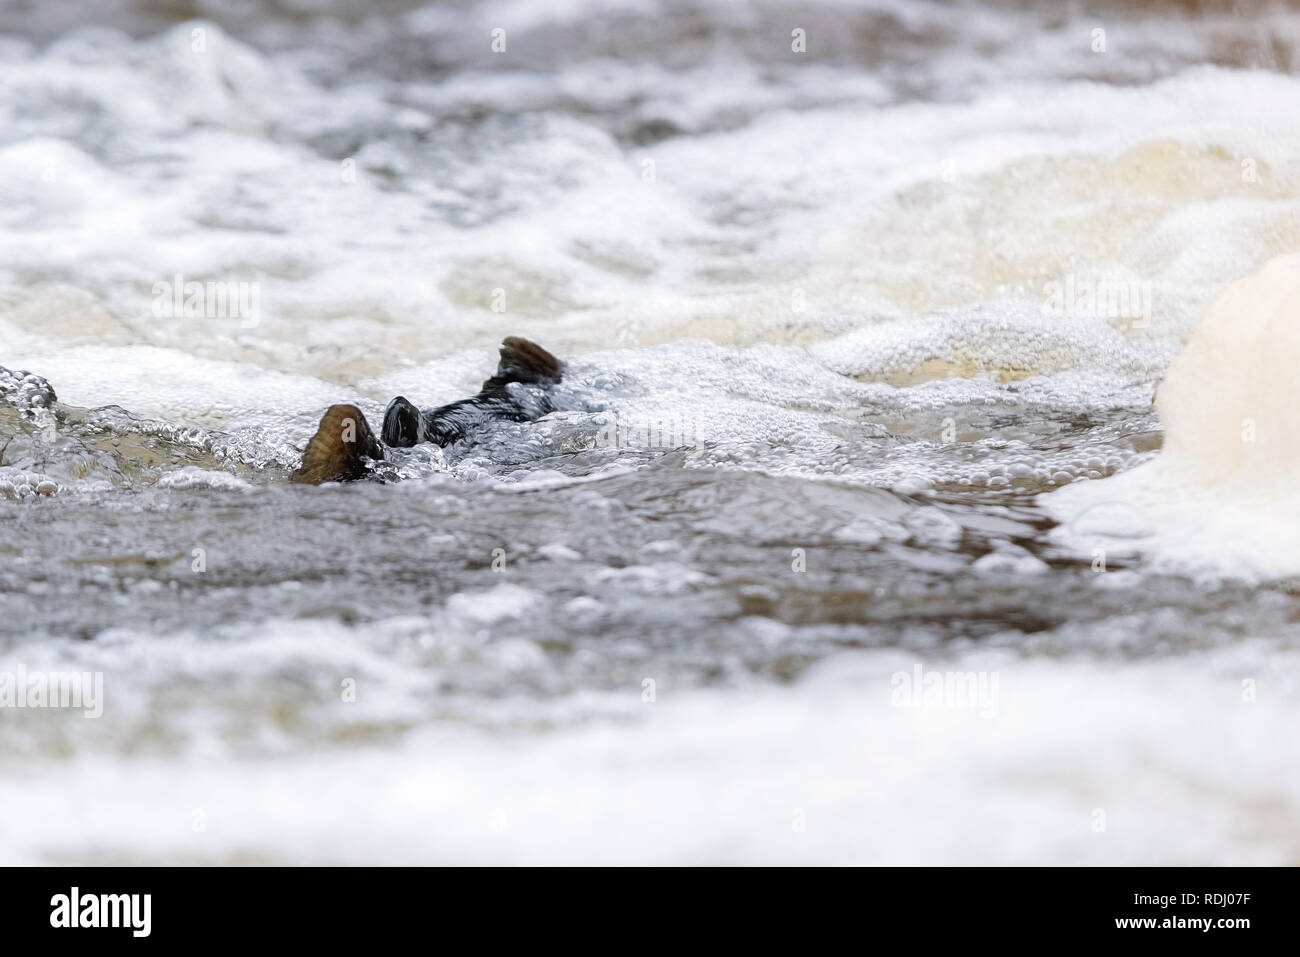 Atlantic salmon leaping rapids to find nesting place. Fish swimming in river upstream to breed - Stock Image